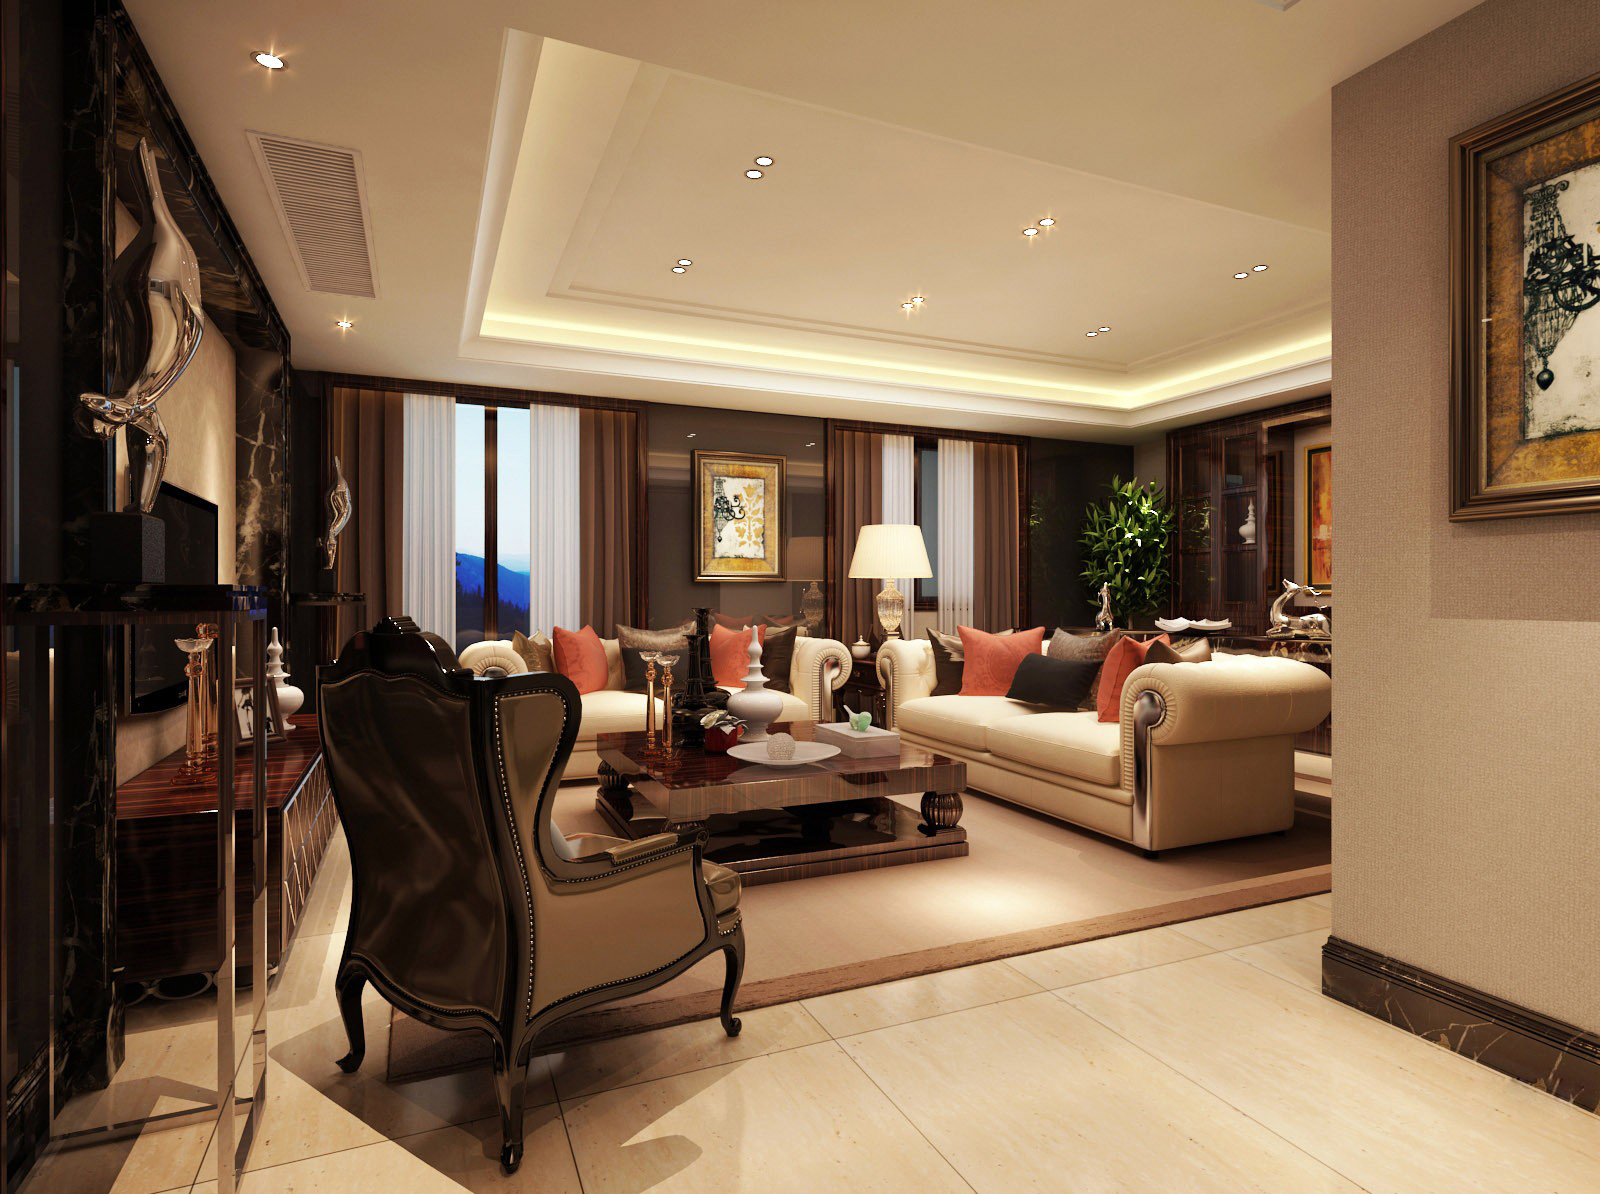 Pictures Of Furnished Living Rooms - palesten.com -